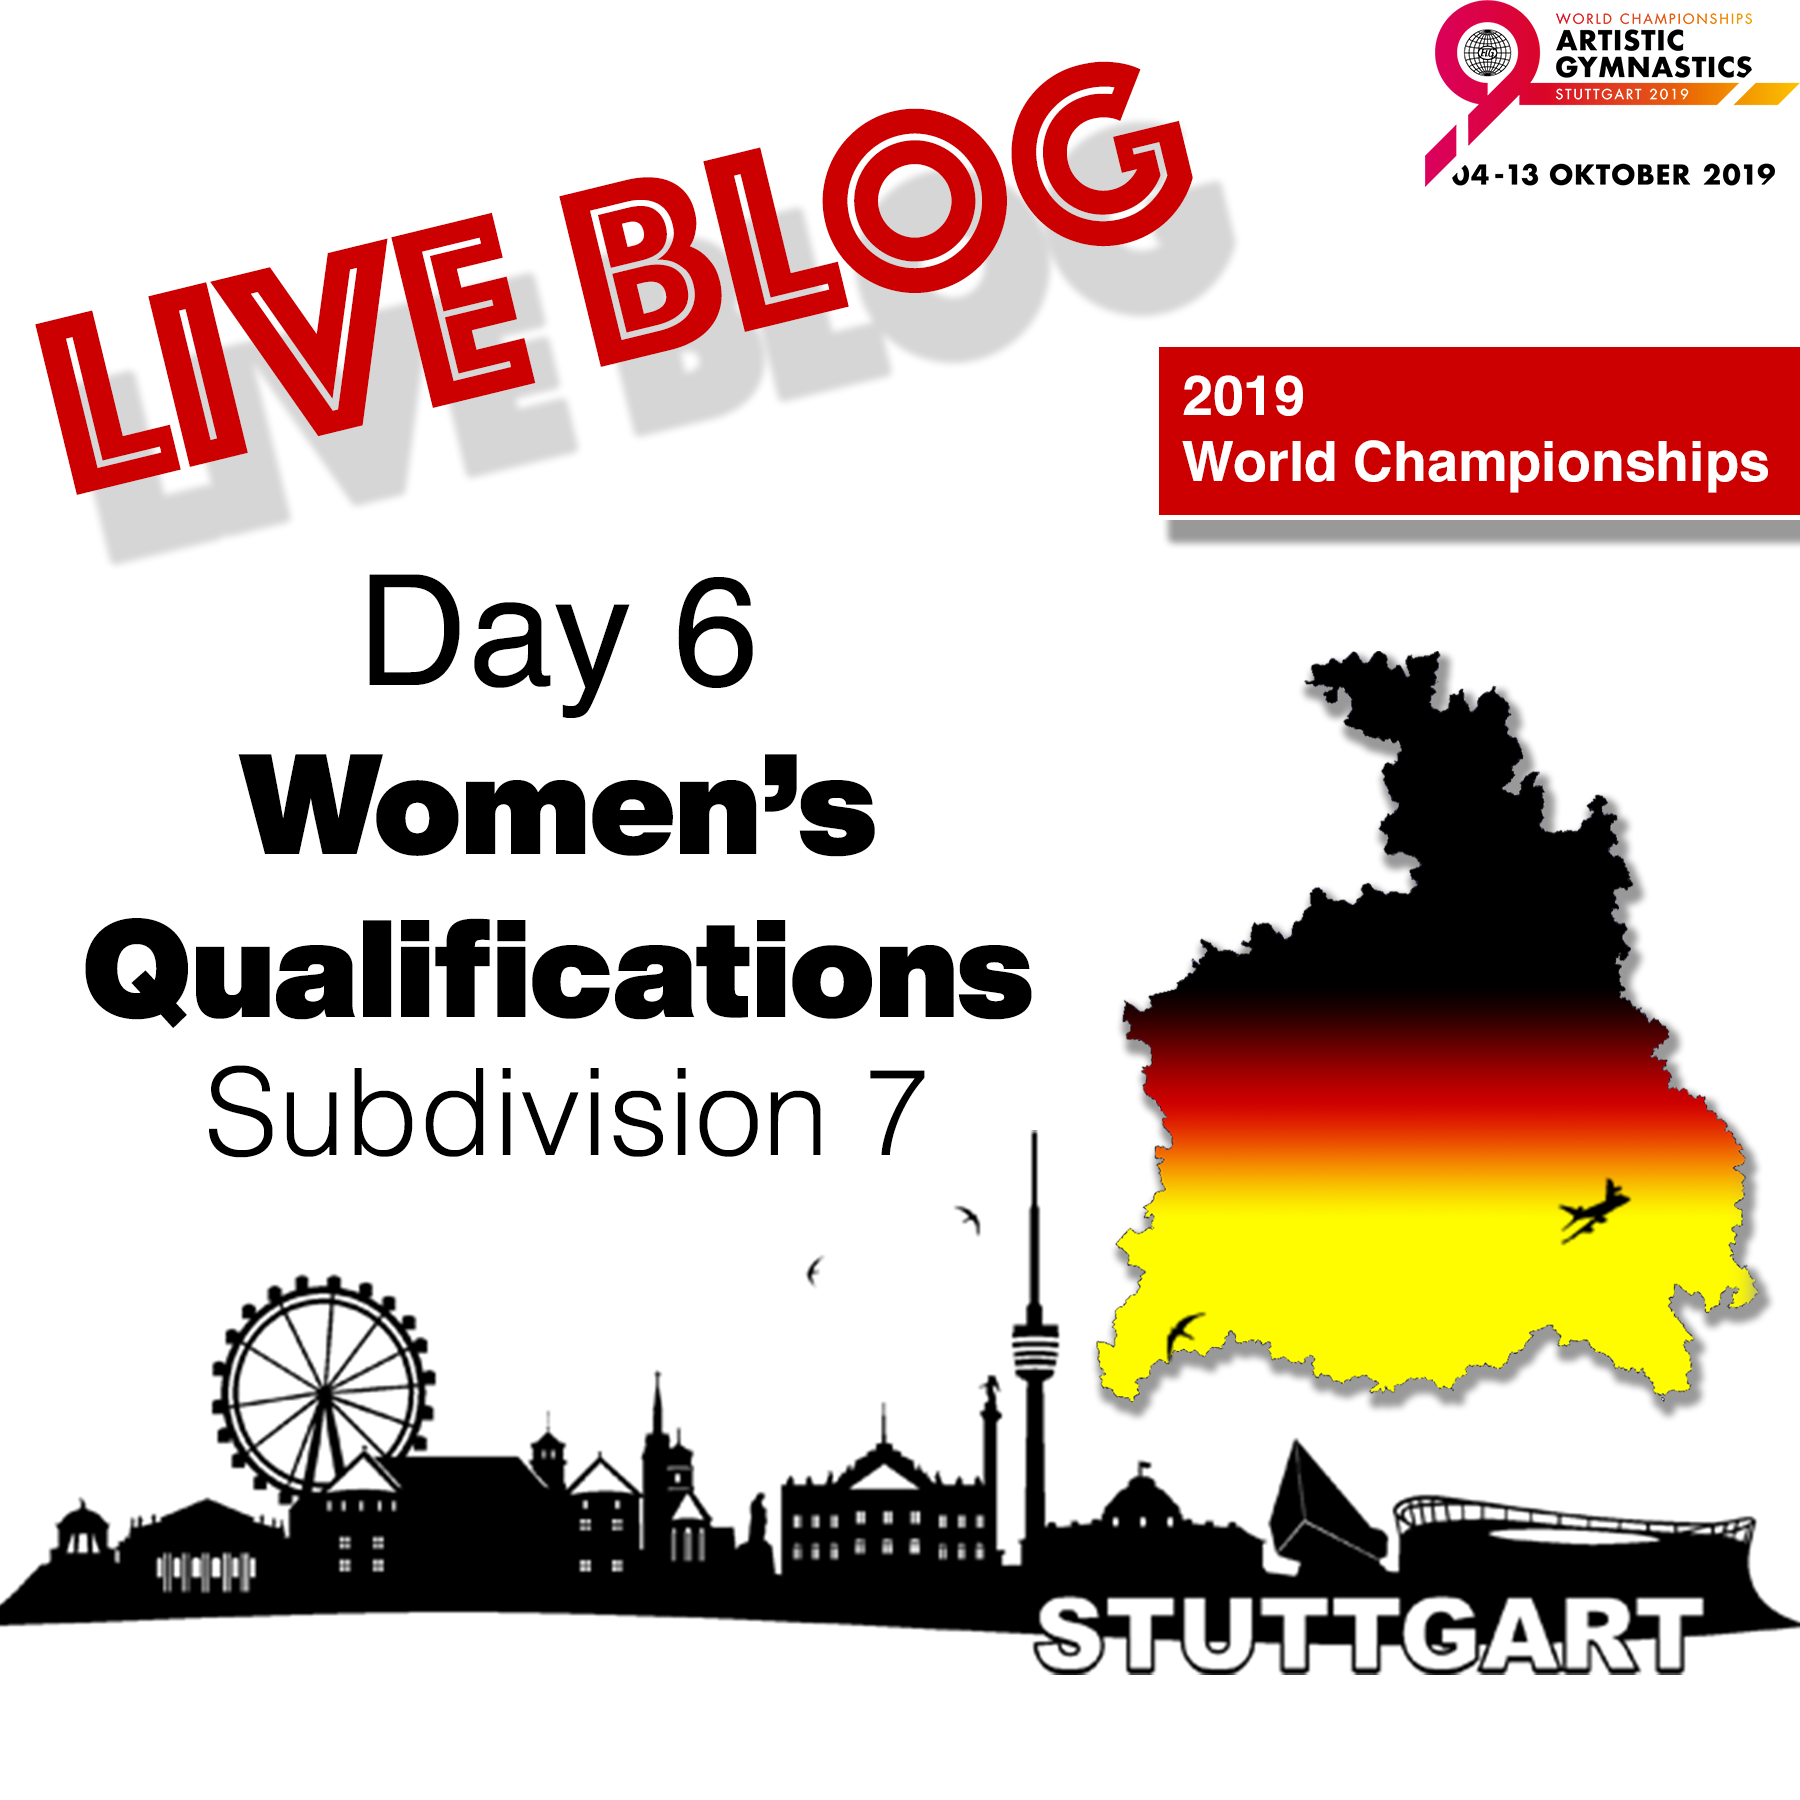 Live Blog: 2019 World Championships – WAG Qualifications – Sub Division 7, Oct. 5th